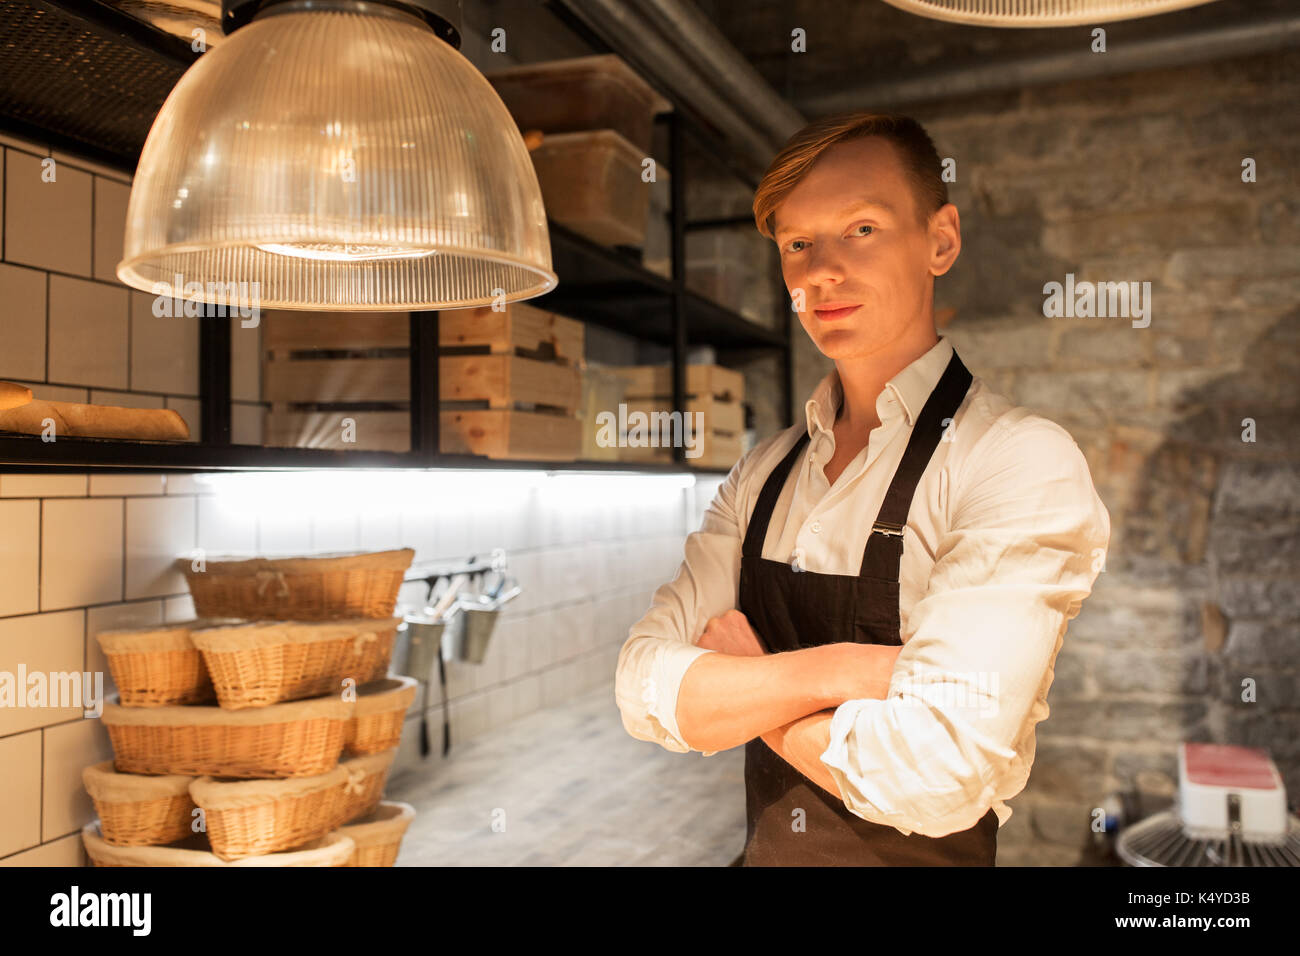 chef or baker in apron at bakery kitchen - Stock Image